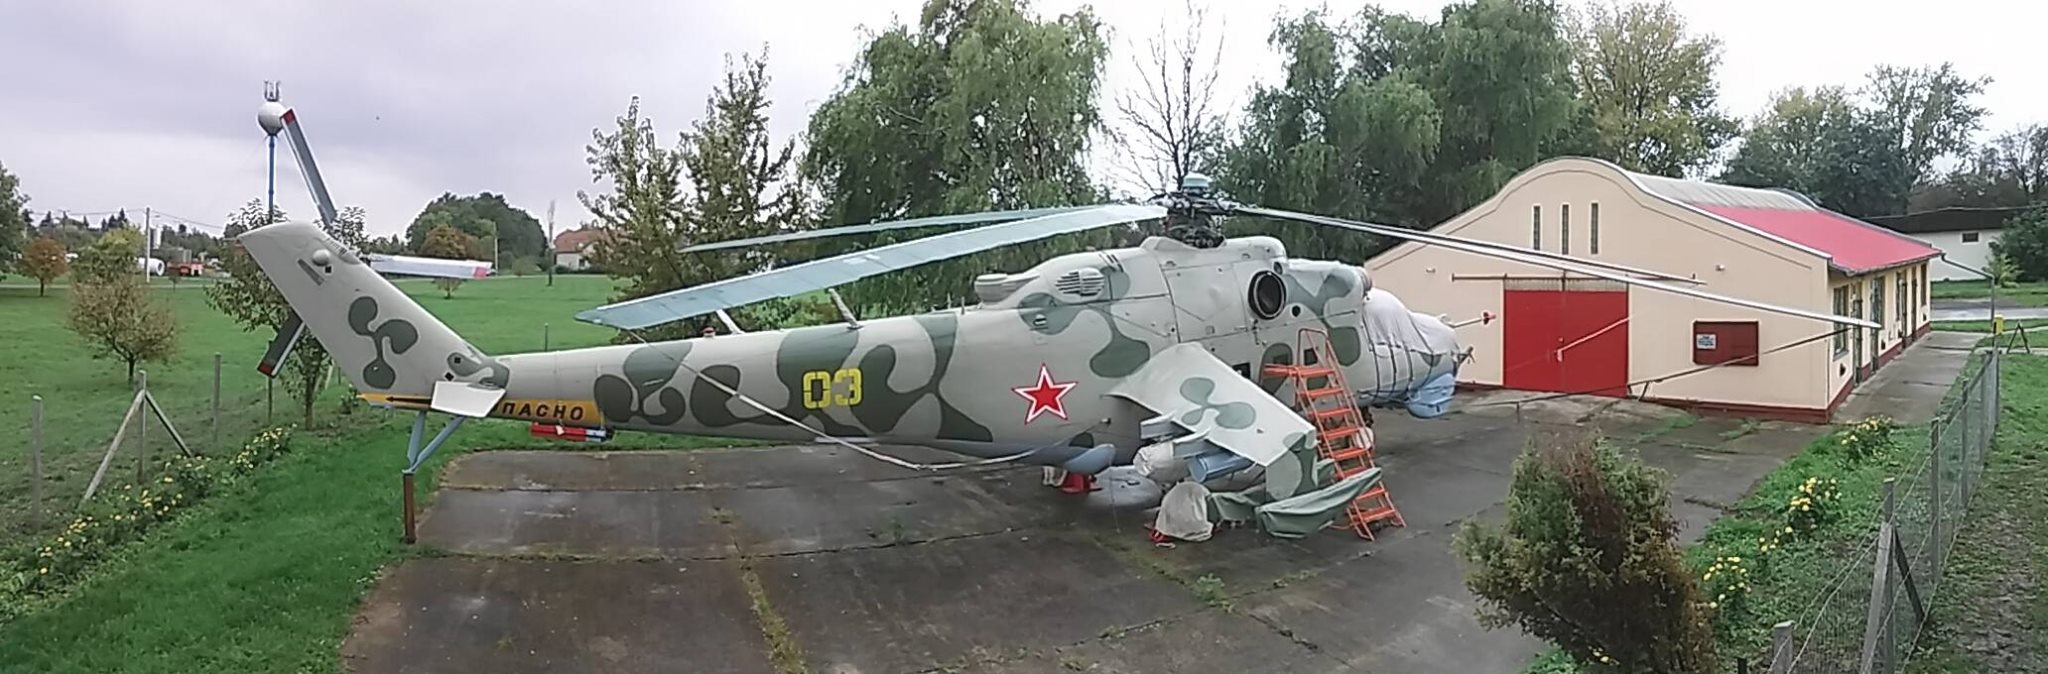 Freshly restored Mi-24D of the Secrets of the Soviet airbase museum: this very machine was the very first export Mi-24 in the world! (ex. NVA Mi-24D 403, and later Bundeswehr 96+20)